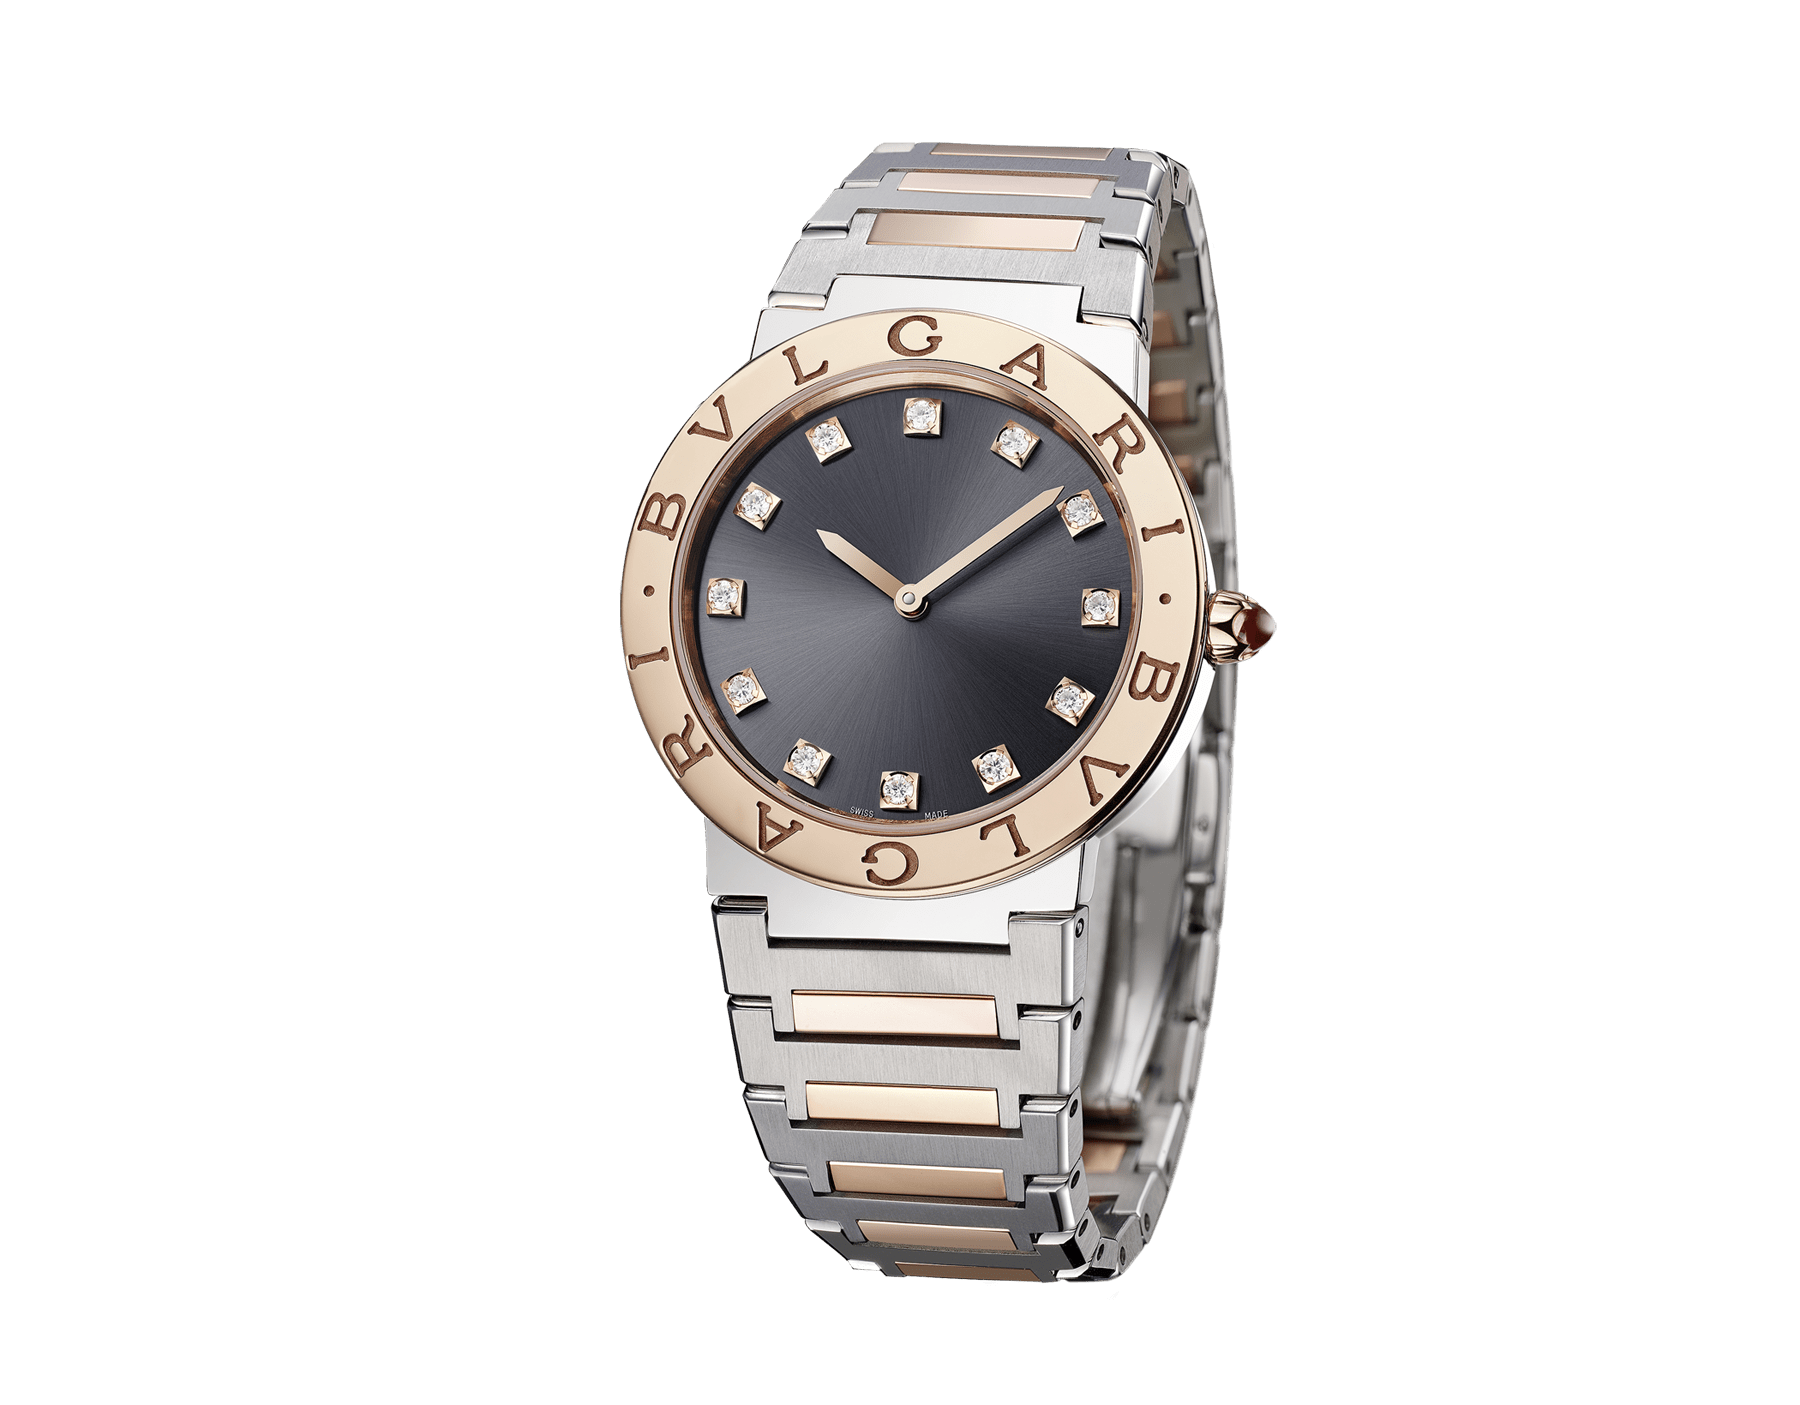 BVLGARI BVLGARI LADY watch with stainless steel case, 18 kt rose gold bezel engraved with double logo, gray lacquered dial, diamond indexes, and stainless steel and 18 kt rose gold bracelet. 103067 image 2